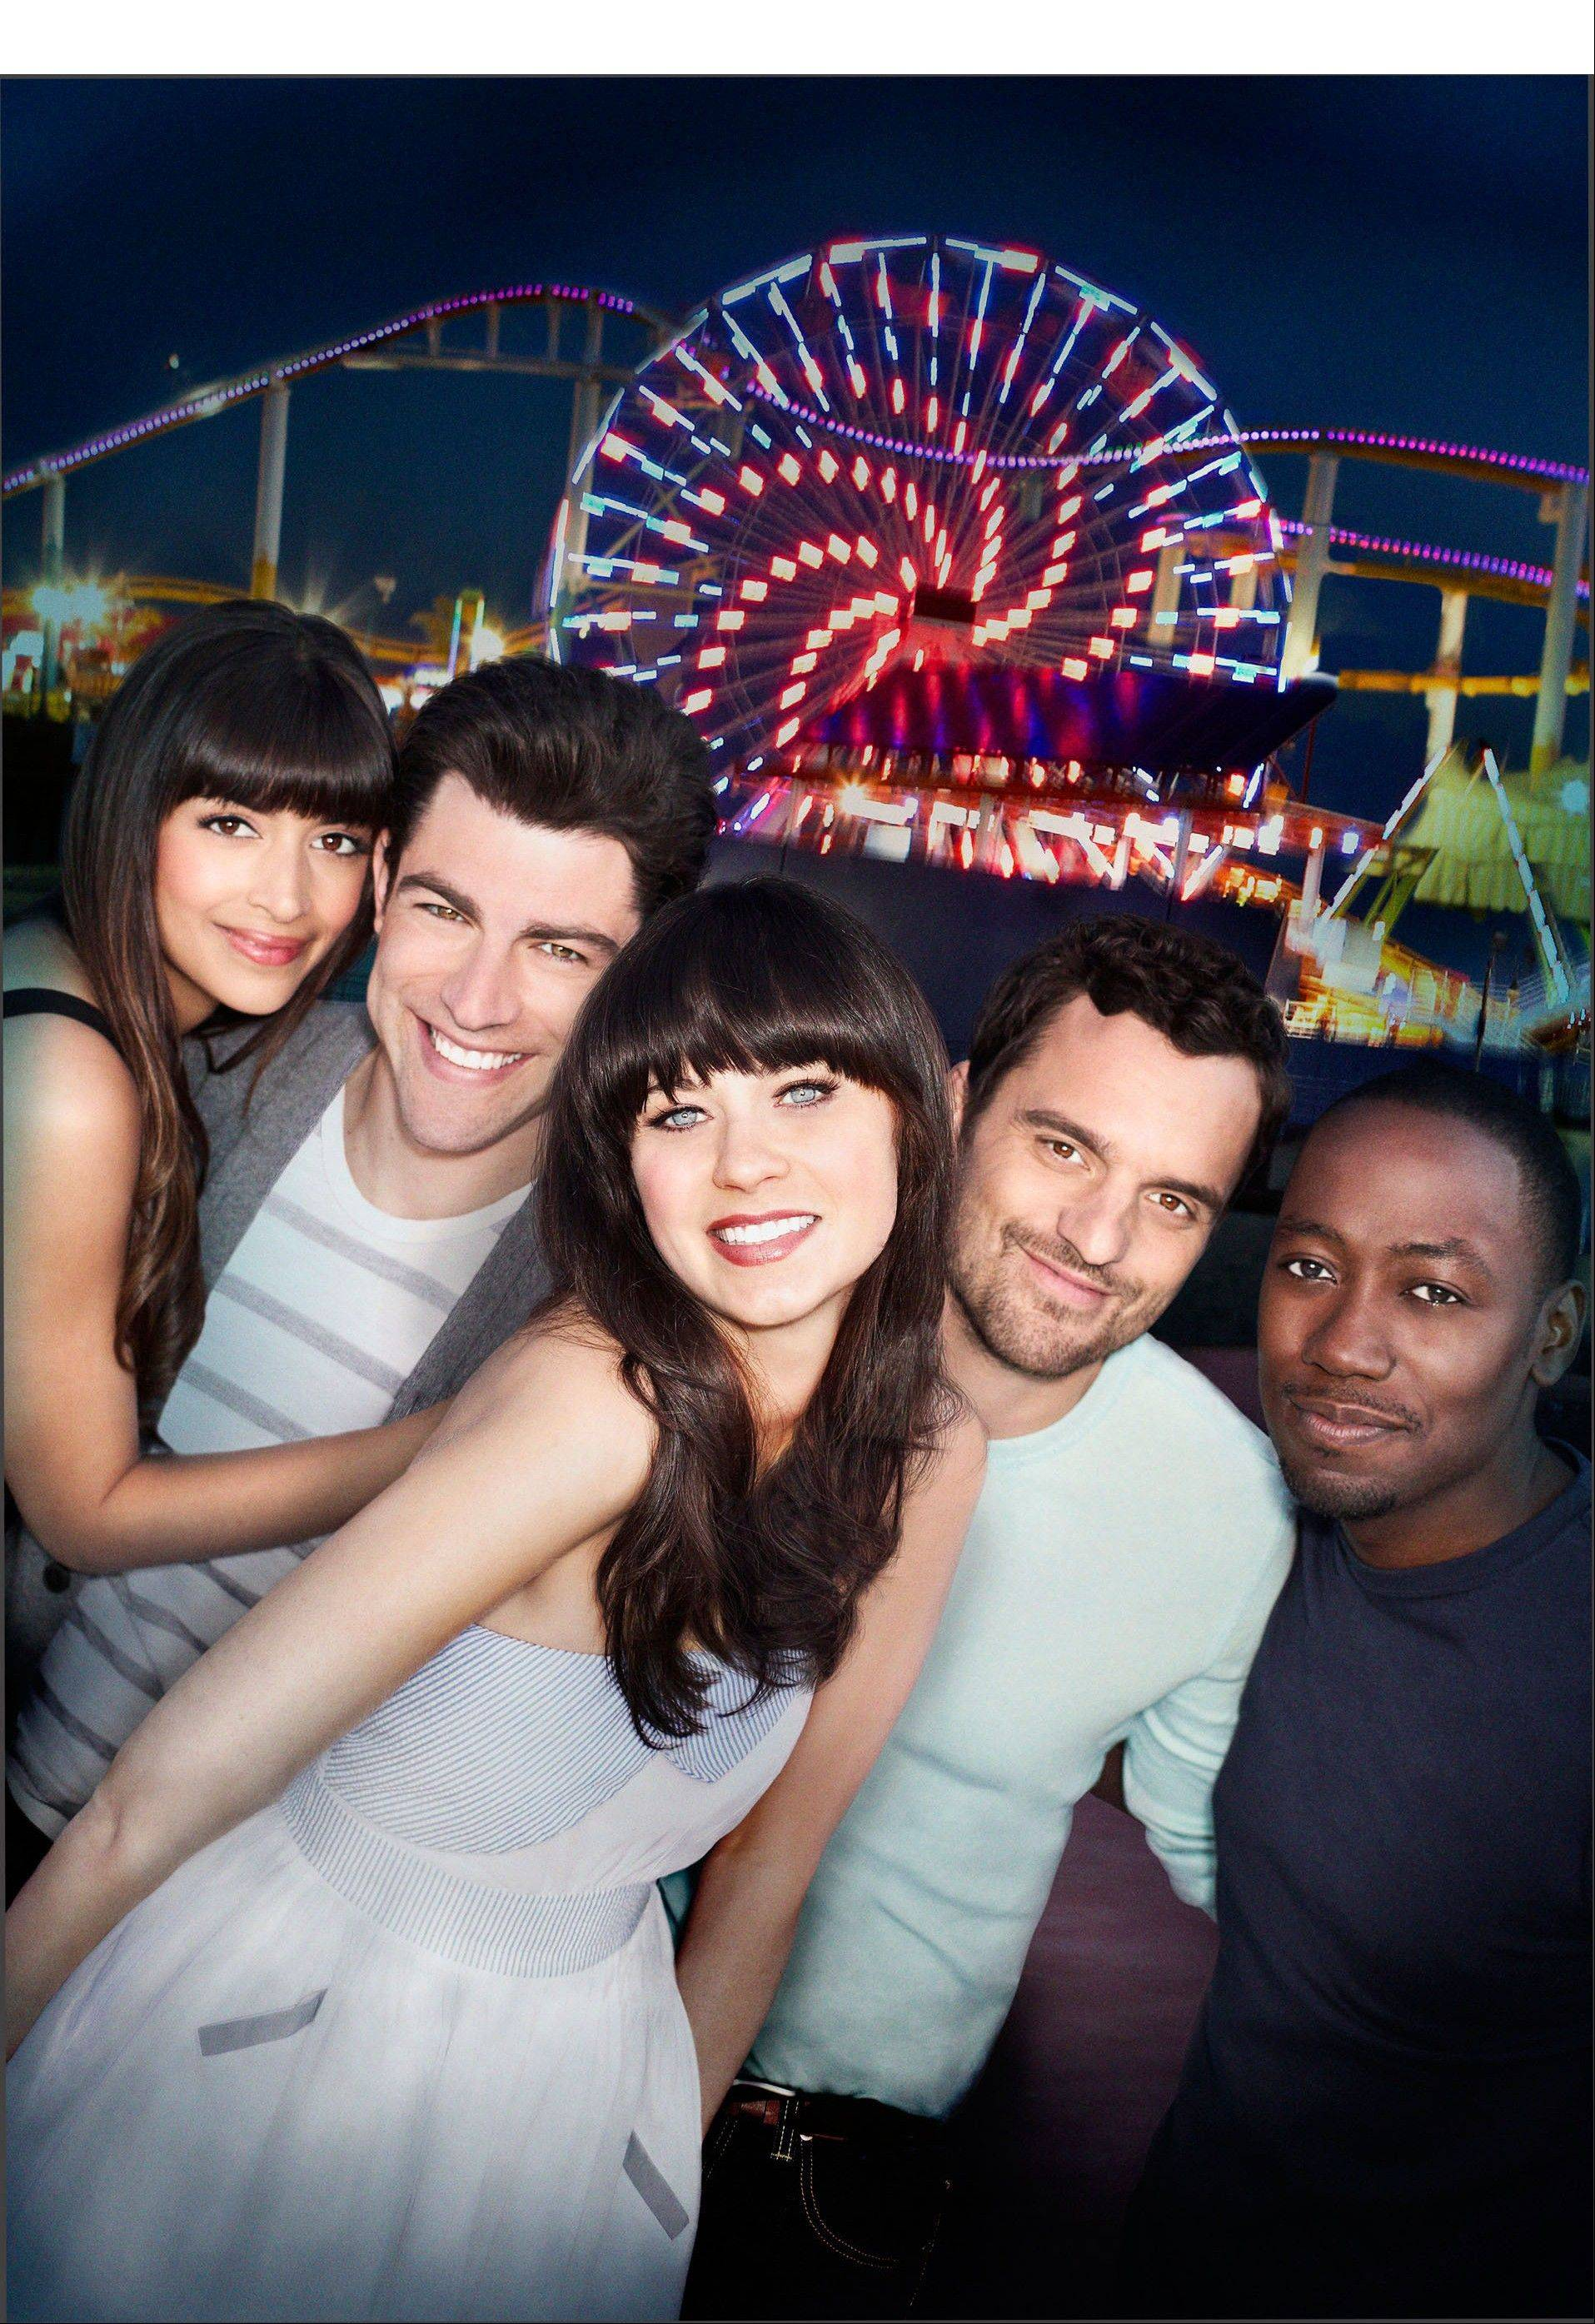 Netflix Inc., signed an exclusive multiyear deal with Twentieth Century Fox Television to stream past seasons of �New Girl� to its U.S. online members.